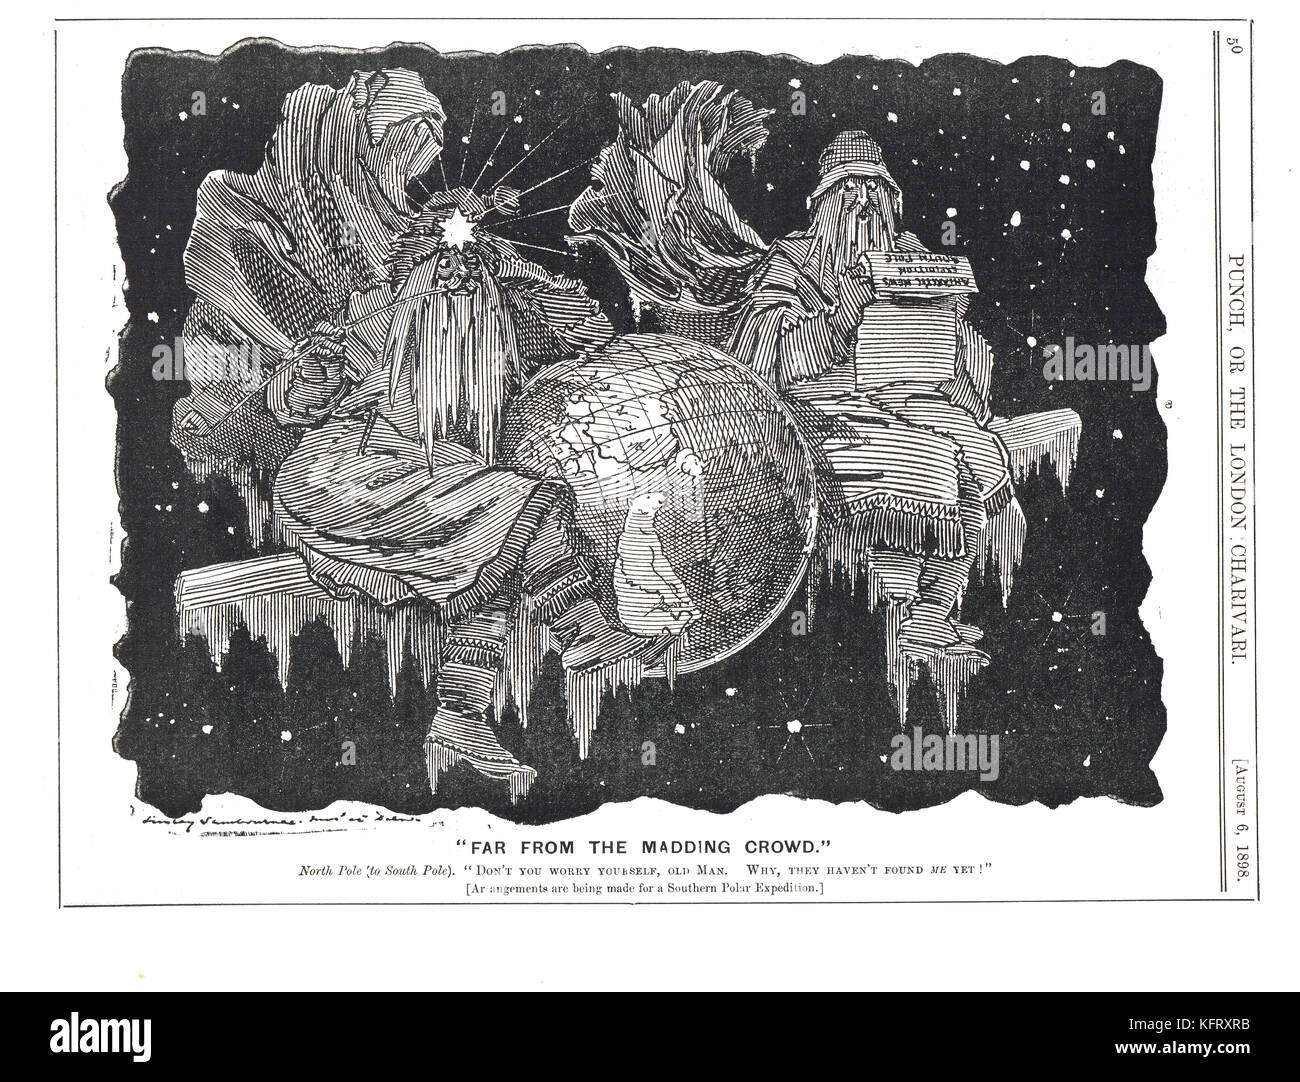 Southern Cross Expedition, Punch cartoon 1898, The North pole telling the South Pole not to worry himself as they - Stock Image